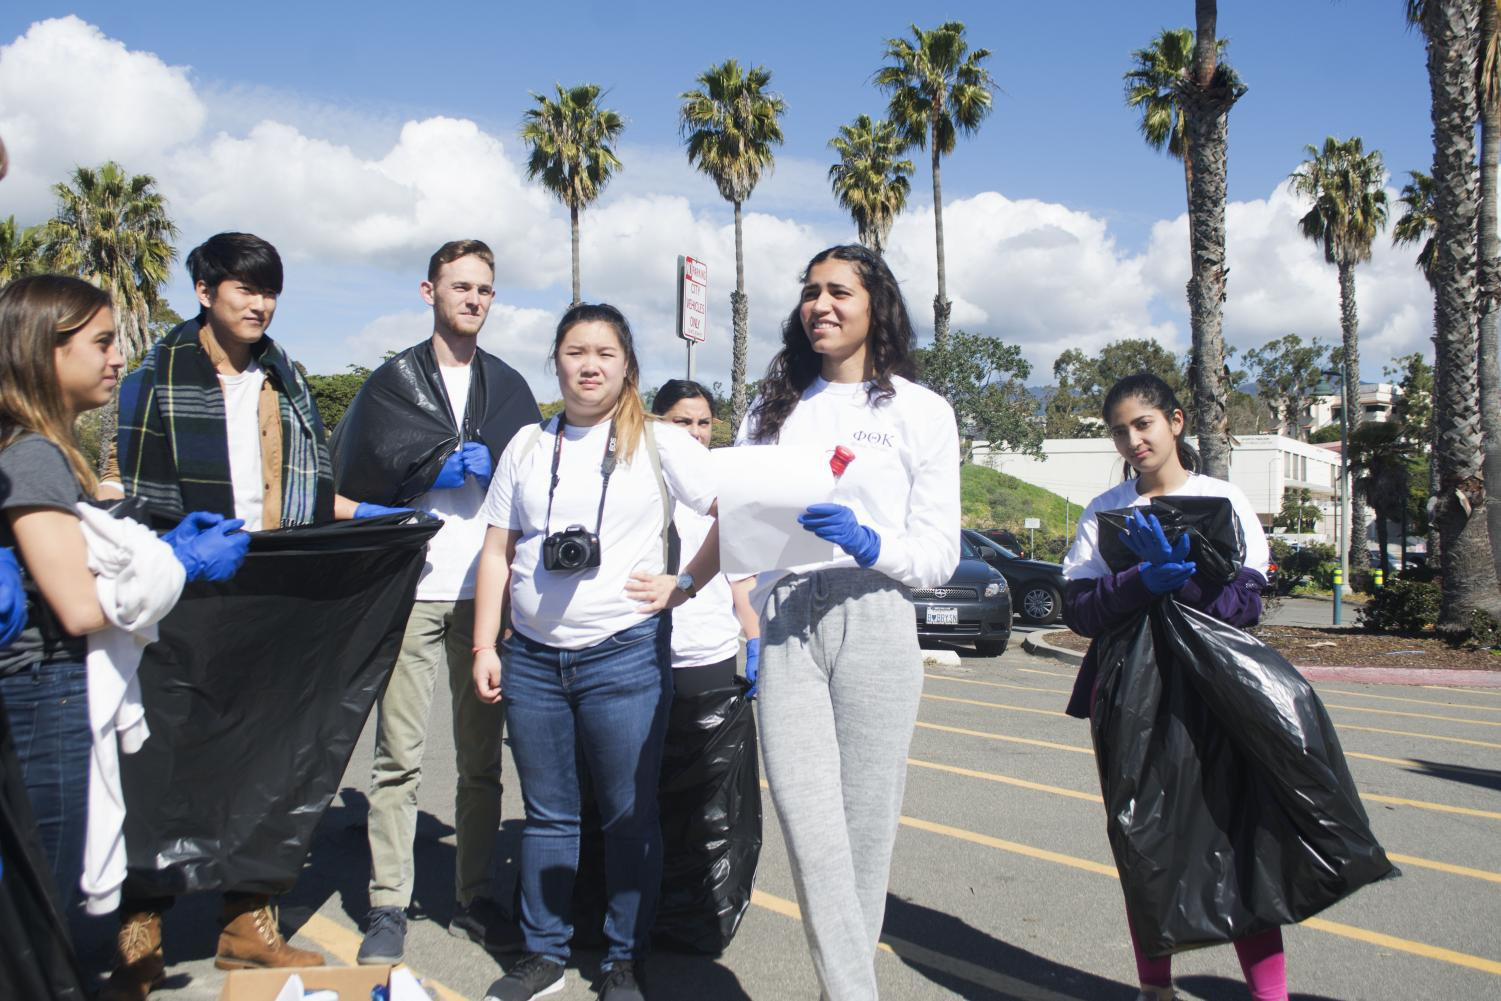 Layla Tondravi, a member of the leadership group of SBCC's Phi Kappa Theta Honors Society, speaks to a group of students gathered to participate in a beach clean up event Saturday, March 9, 2019, at Leadbetter Beach Park in Santa Barbara, Calif.